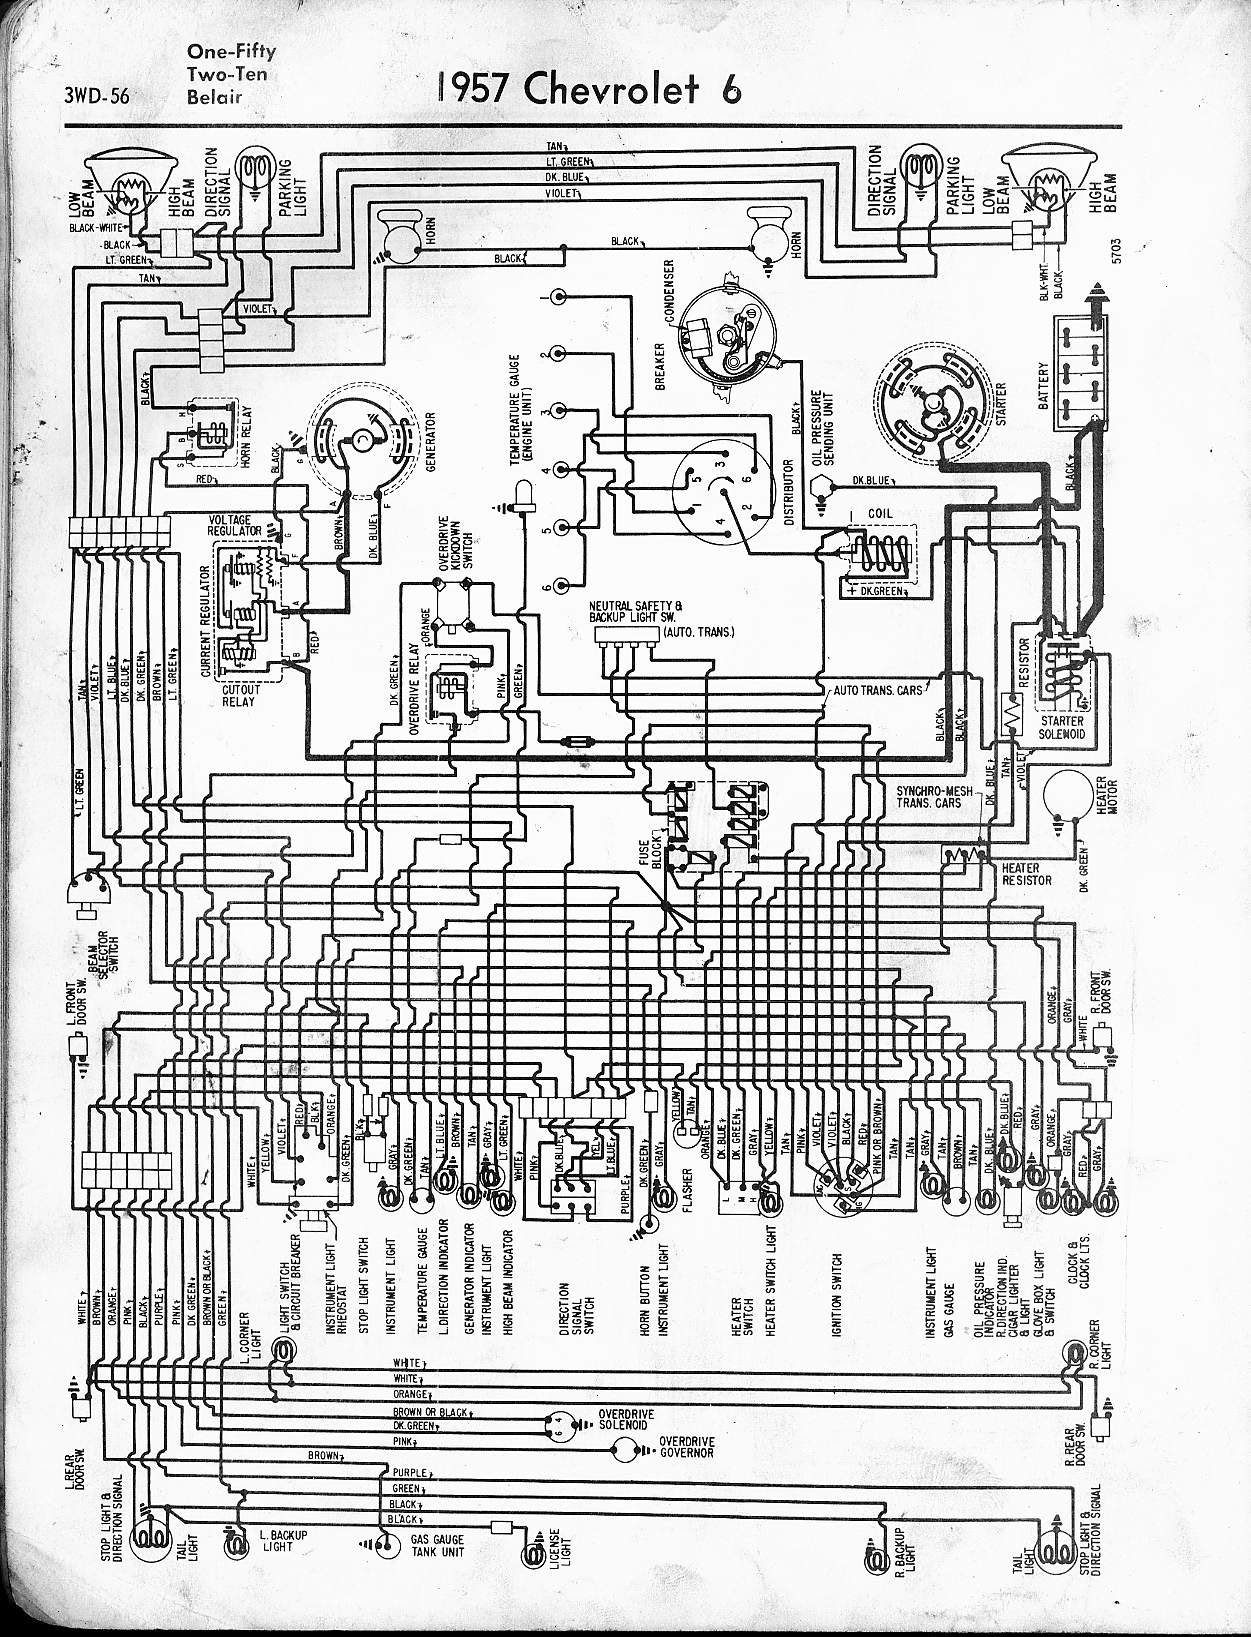 55 Chevy Bel Air Wiring Diagram Wiring Diagram Frame Frame Cfcarsnoleggio It